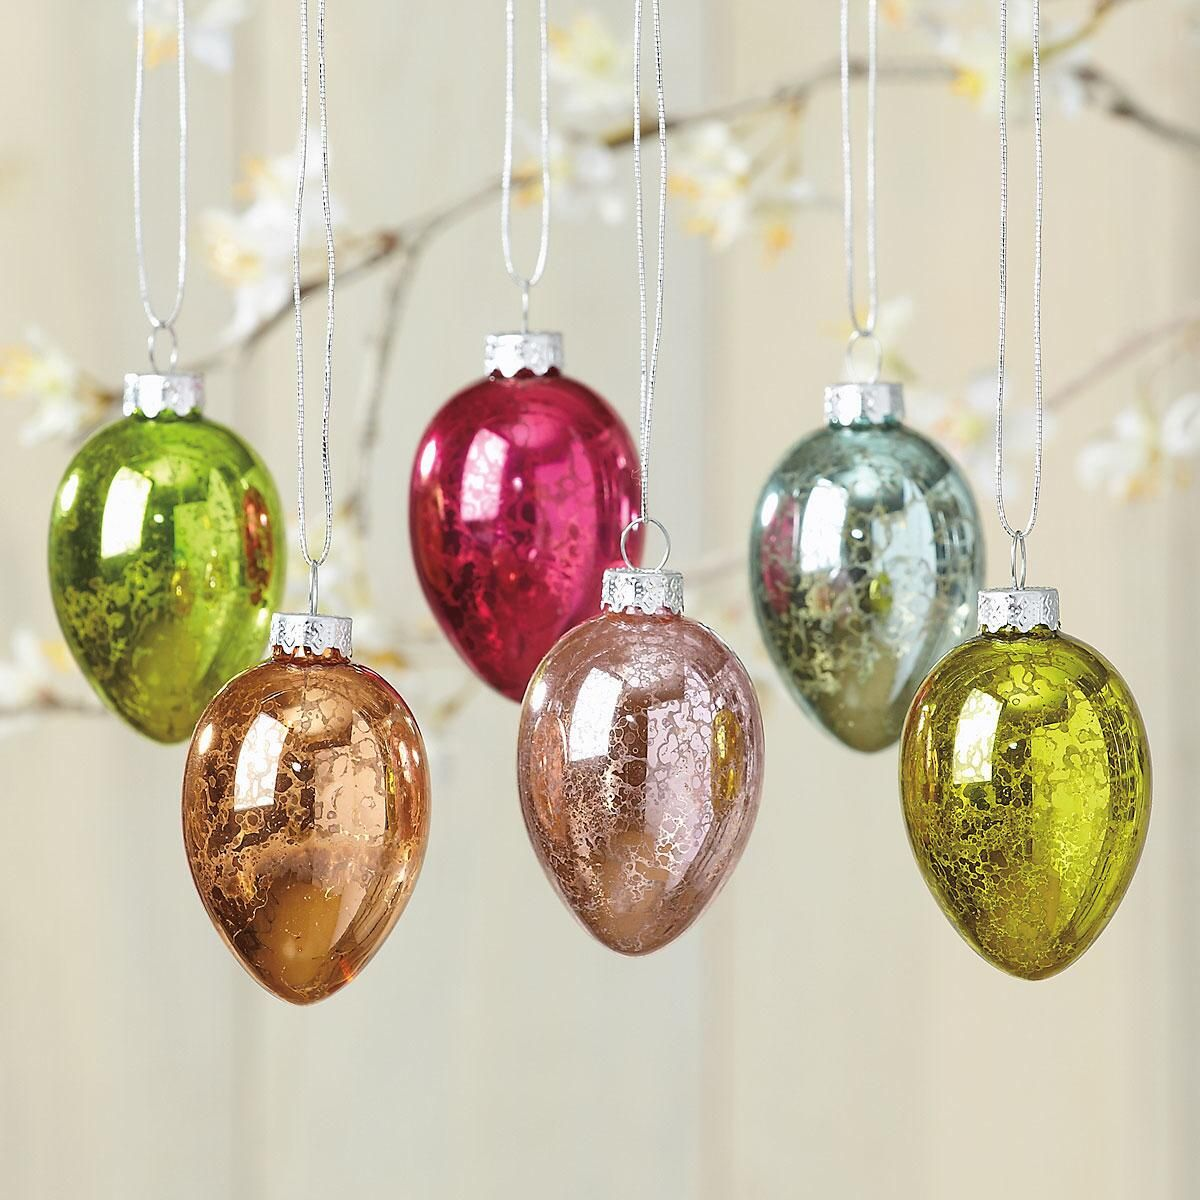 Crackle Finish Eggs Ornaments